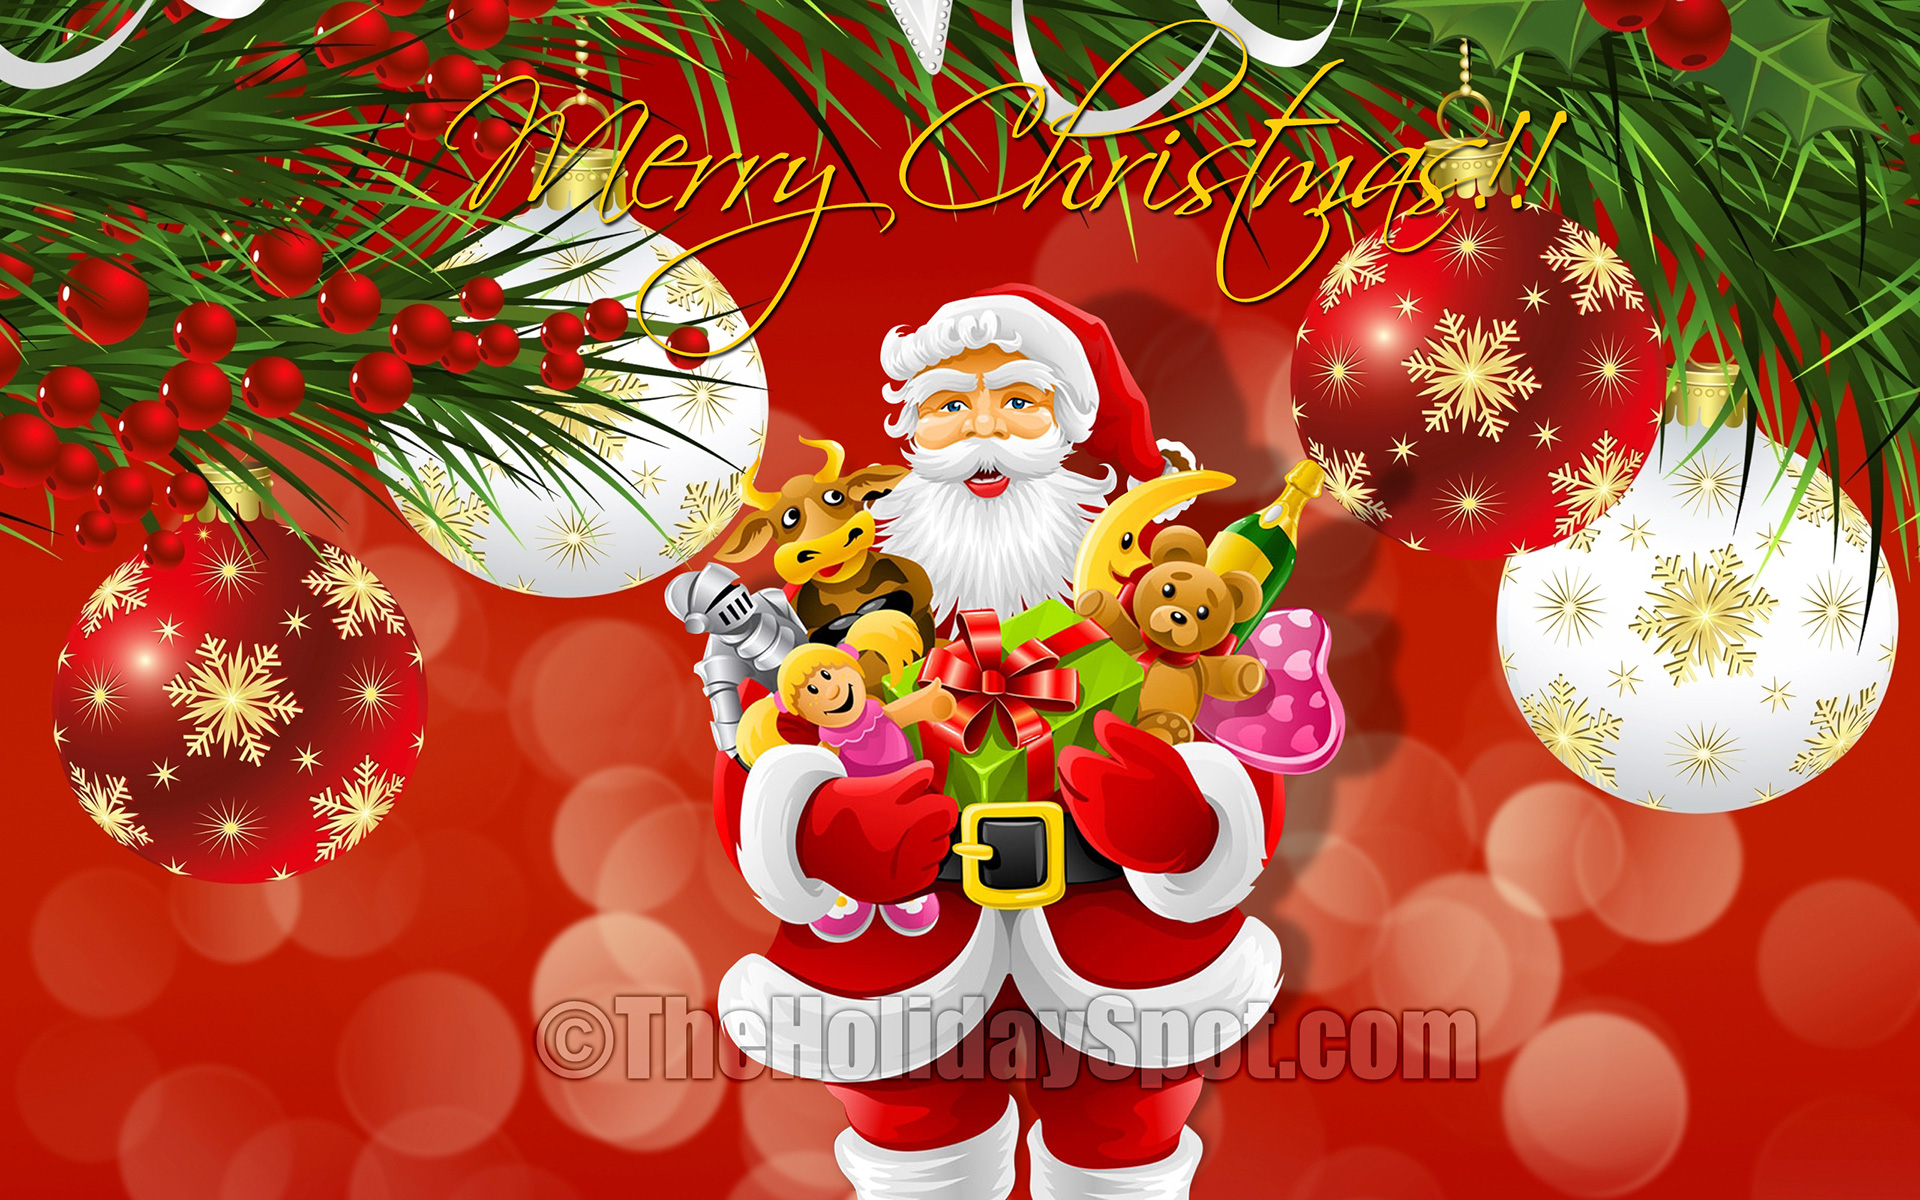 Free Christmas wallpapers   Download HD wallpaper Santa with Toys in Christmas Wallpaper